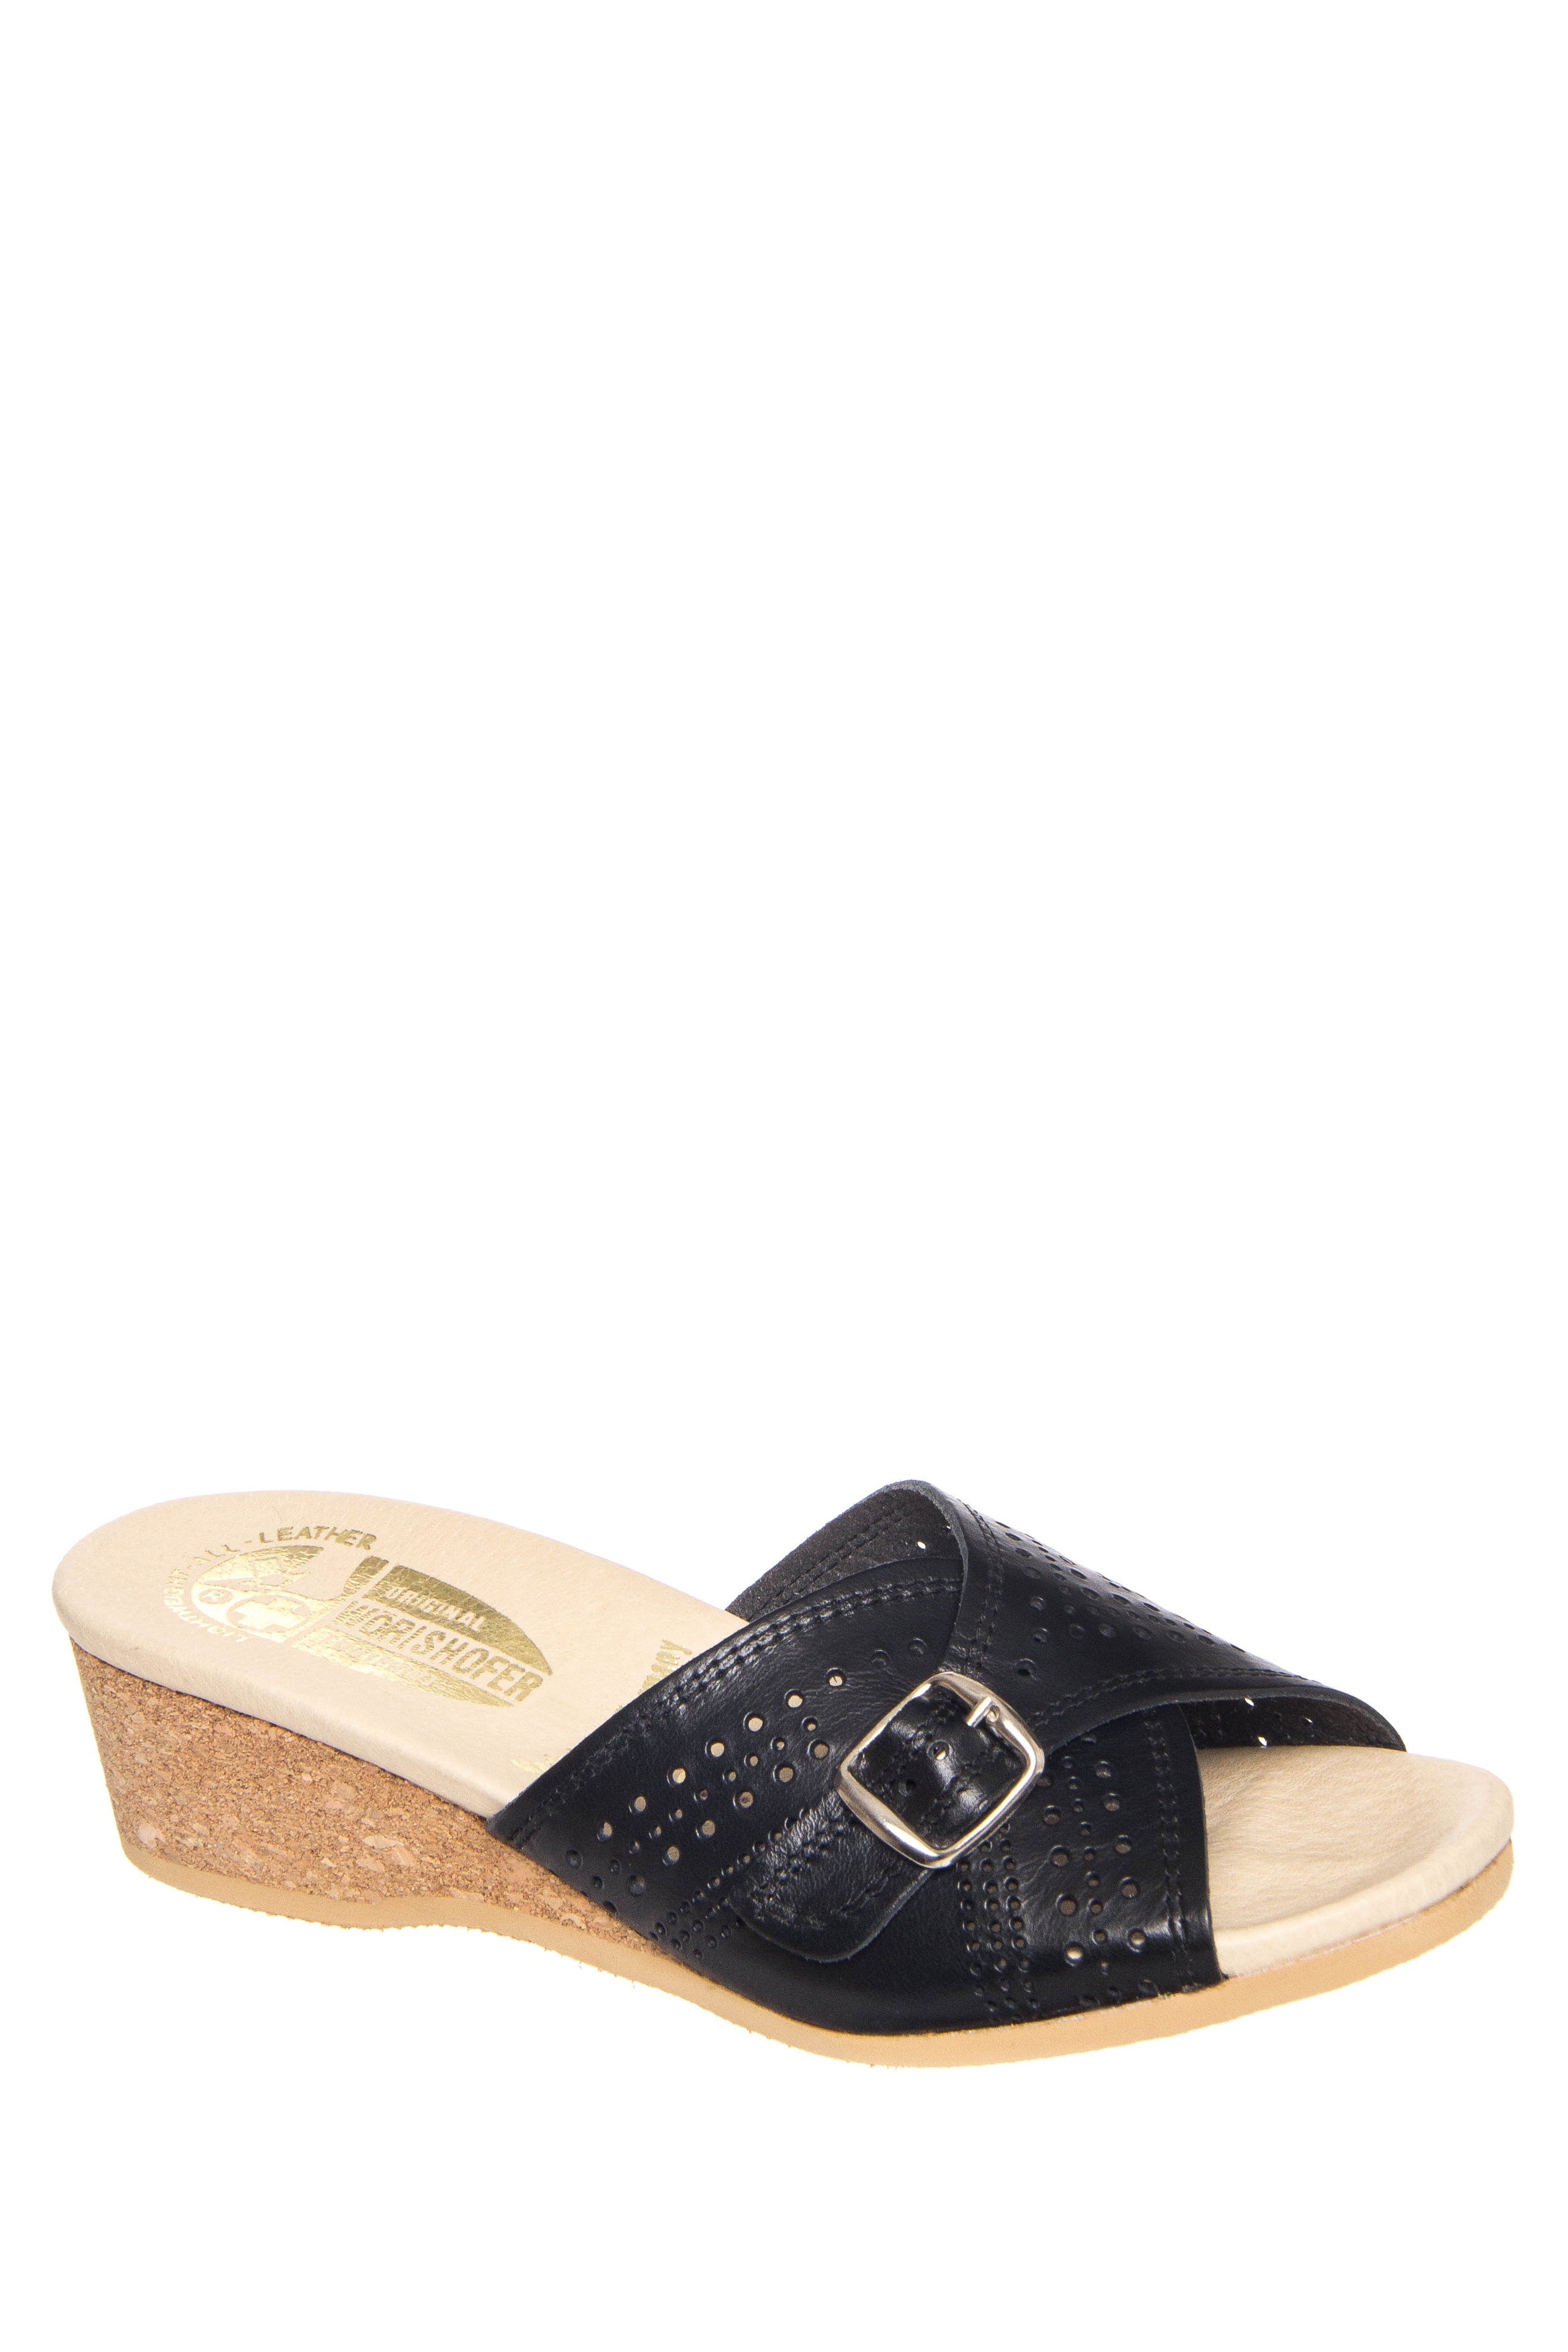 Worishofer 251 Low Wedge Sandals - Black